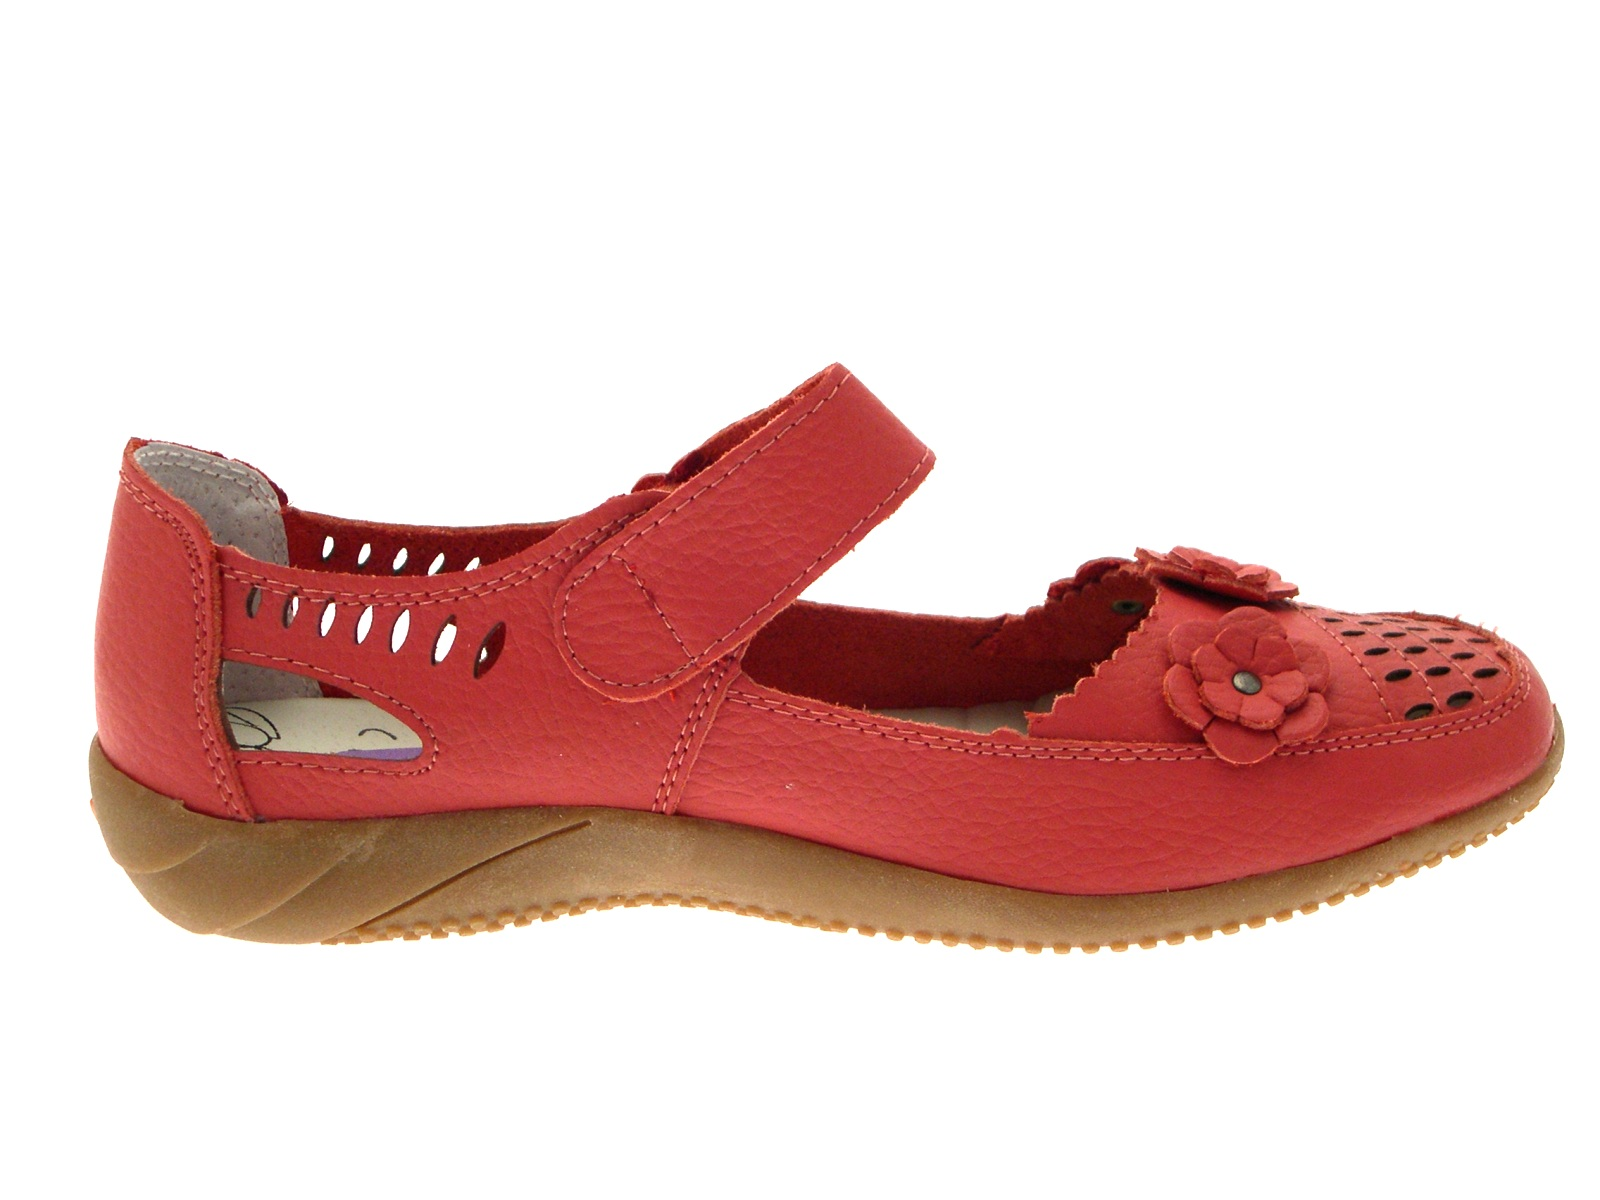 Womens Leather Casual Comfort Mary Jane Flat Work Shoes ...